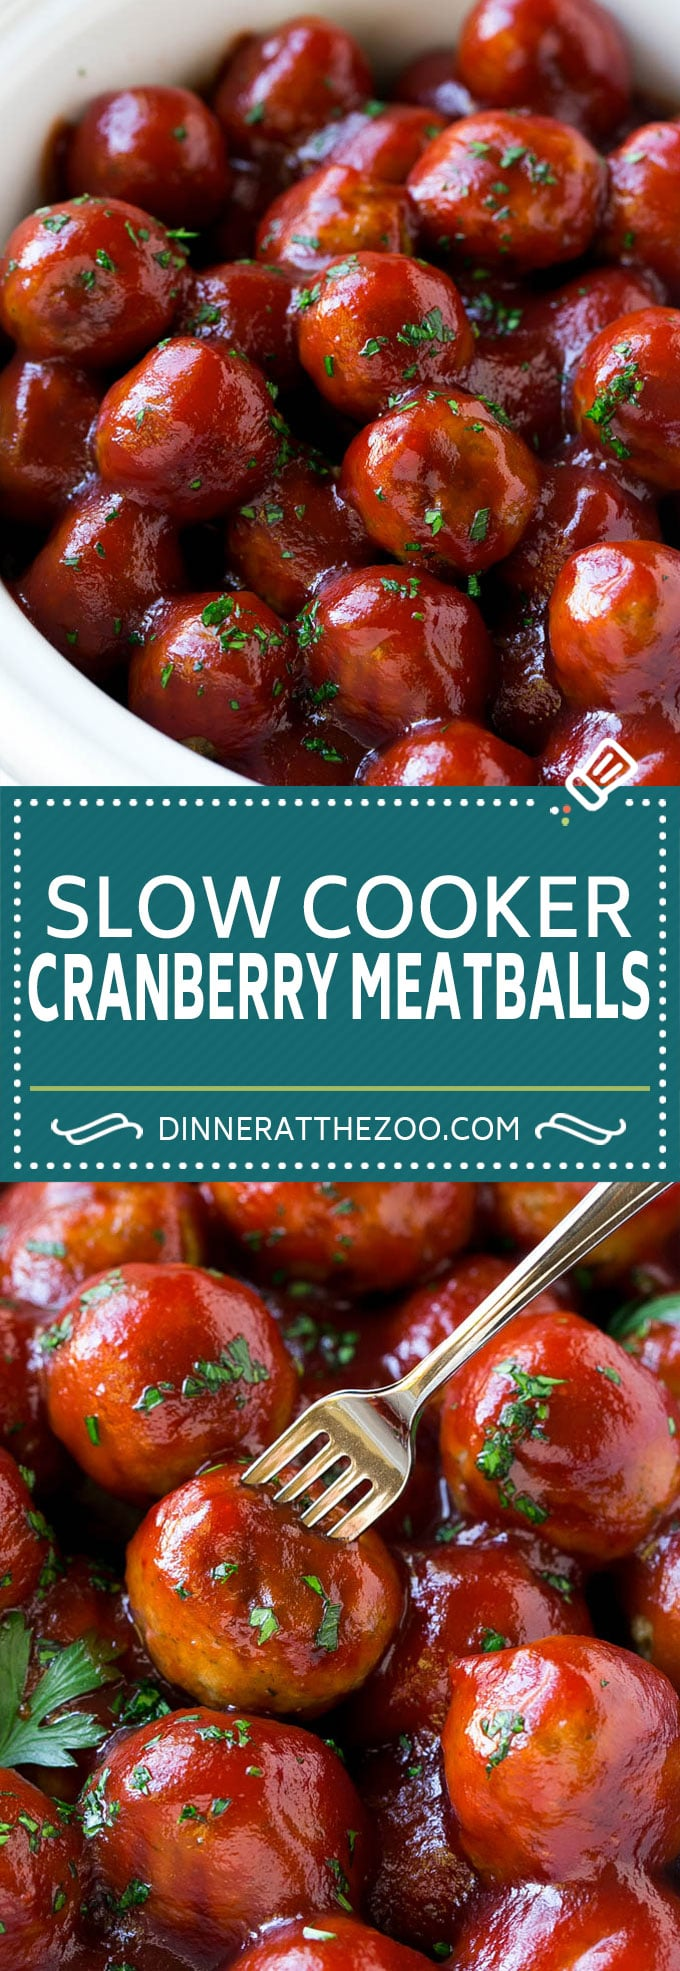 Cranberry Meatballs Recipe | Slow Cooker Meatballs | Slow Cooker Appetizer | Crockpot Meatballs #meatballs #cranberry #appetizer #slowcooker #crockpot #dinneratthezoo